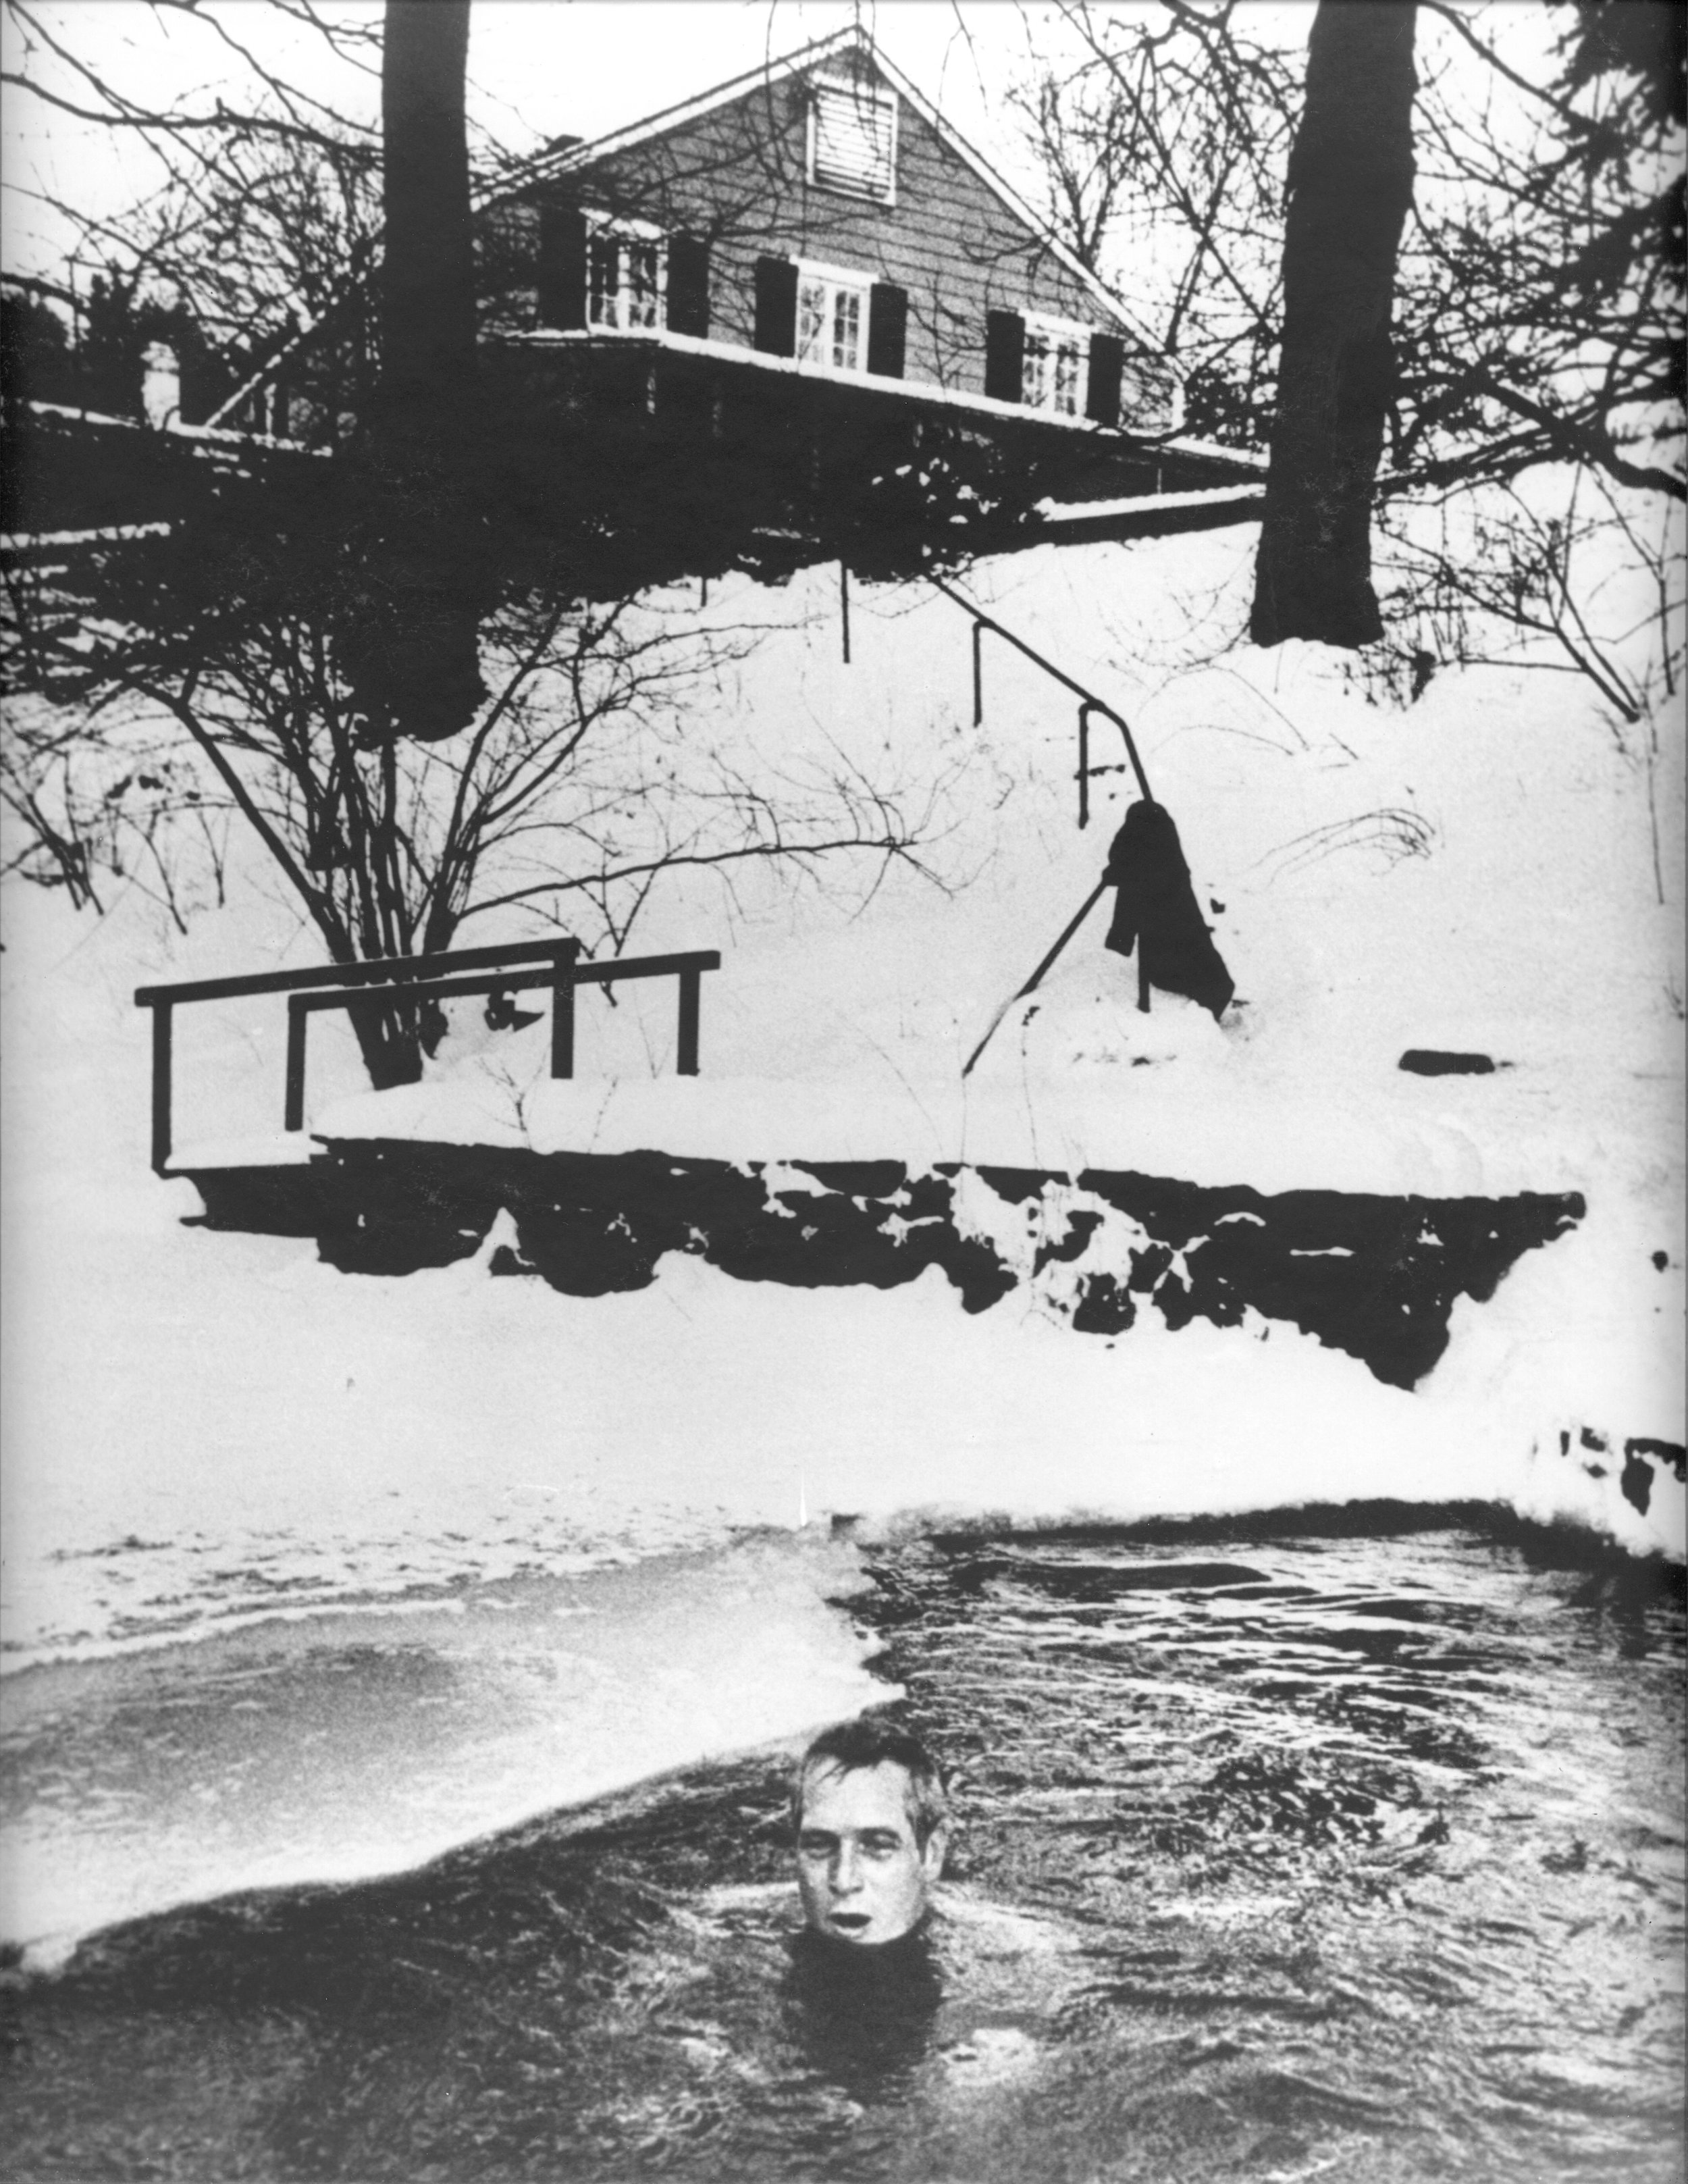 Paul Newman enjoying a winter swim in the Aspetuck river which runs through the preserve.